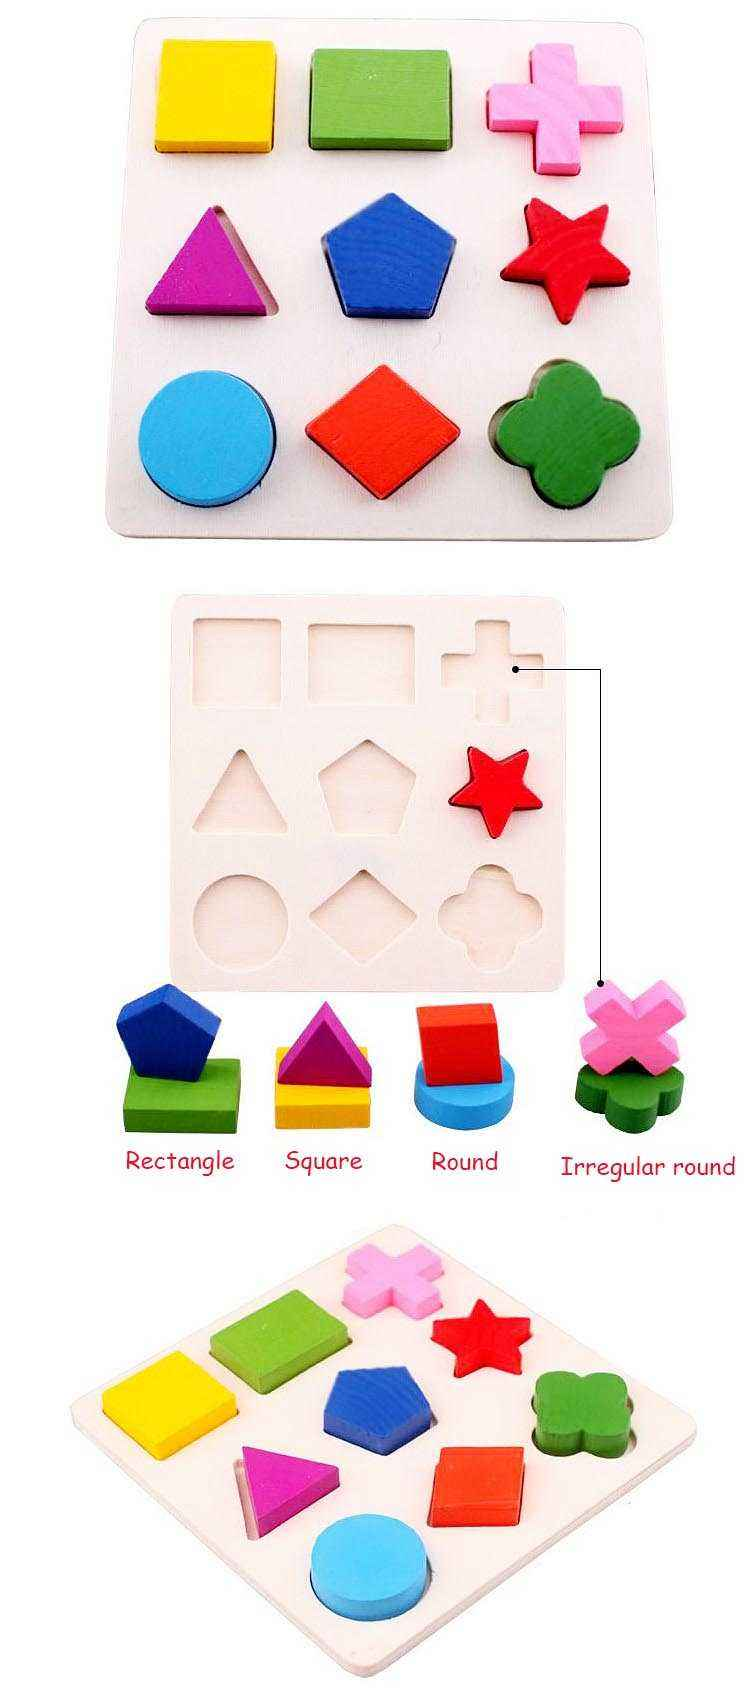 Wooden Geometric Shapes Sorting Math Montessori Puzzle. Preschool Learning Educational Game. Baby Toddler Toys for Children.picture 6